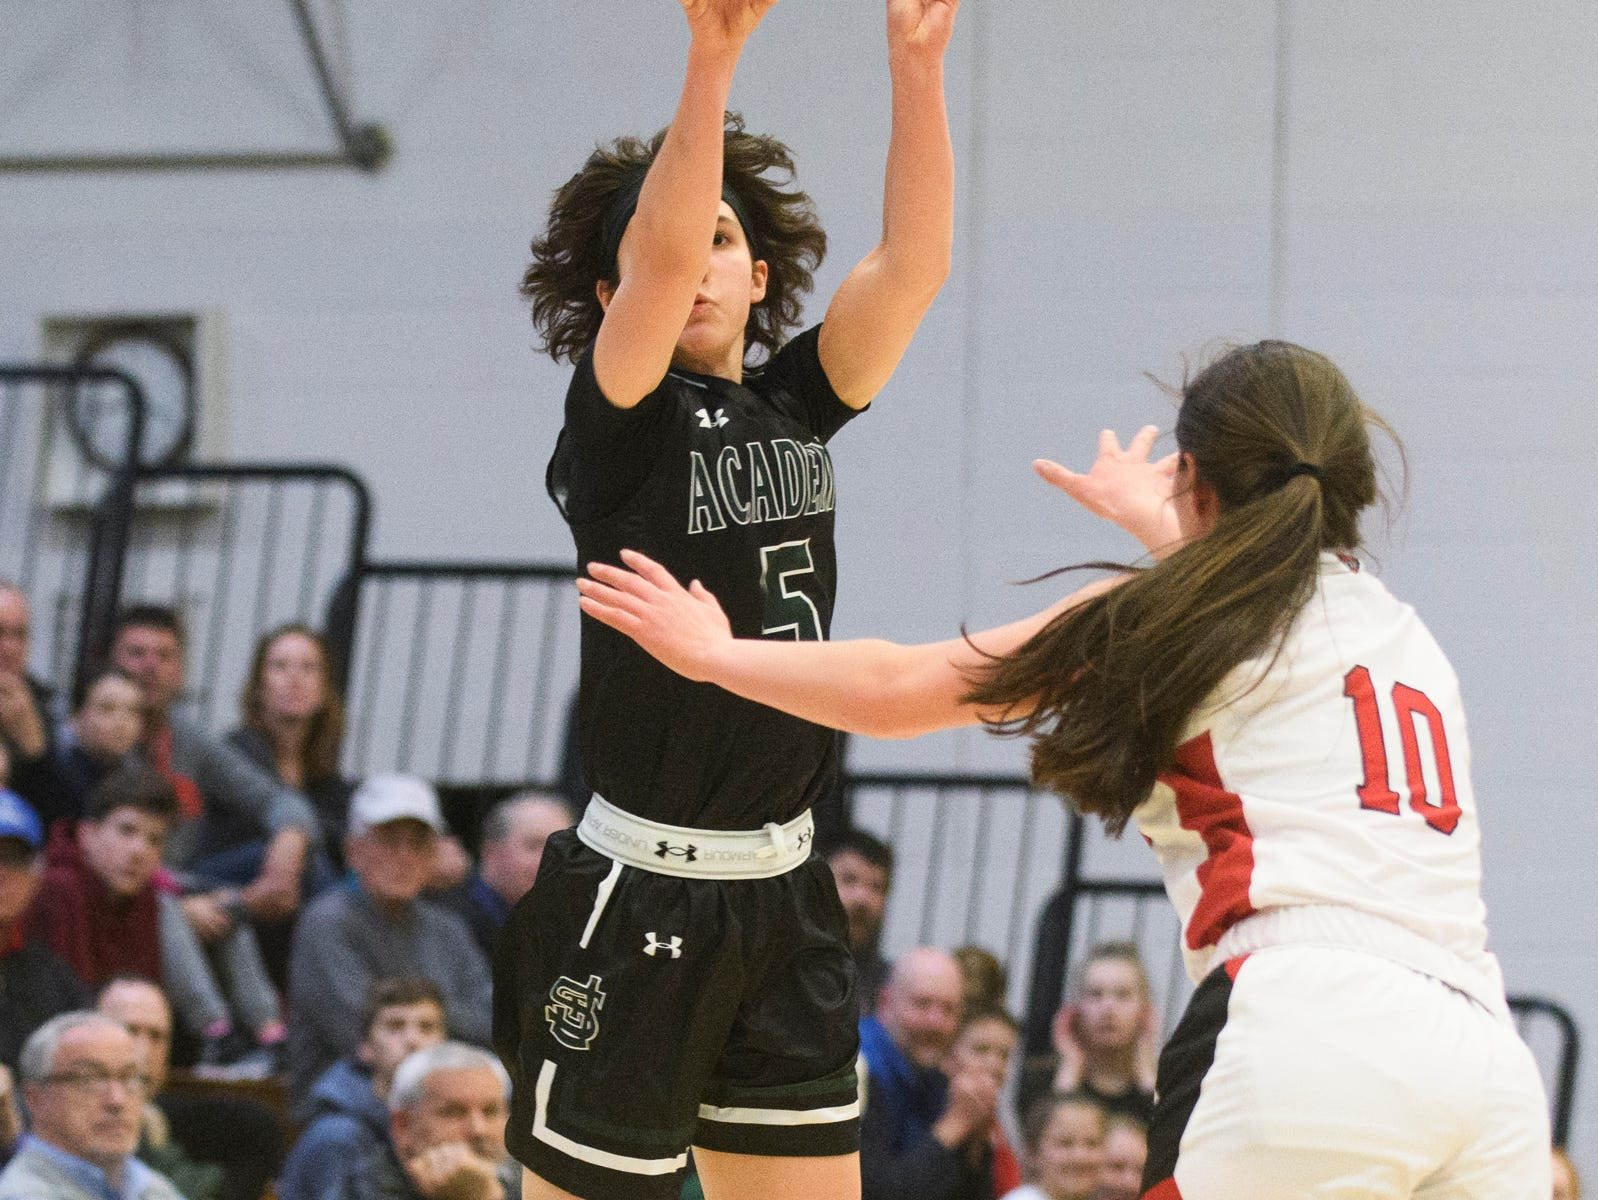 St. Johnsbury's Sadie Stetson (5) shoots the ball over CVU's Quinn Boardman (10) during the division I girls basketball championship basketball game between the St. Johnsbury Hilltoppers and the Champlain Valley Union Redhawks at Patrick Gym on Sunday afternoon March 10, 2019 in Burlington, Vermont.